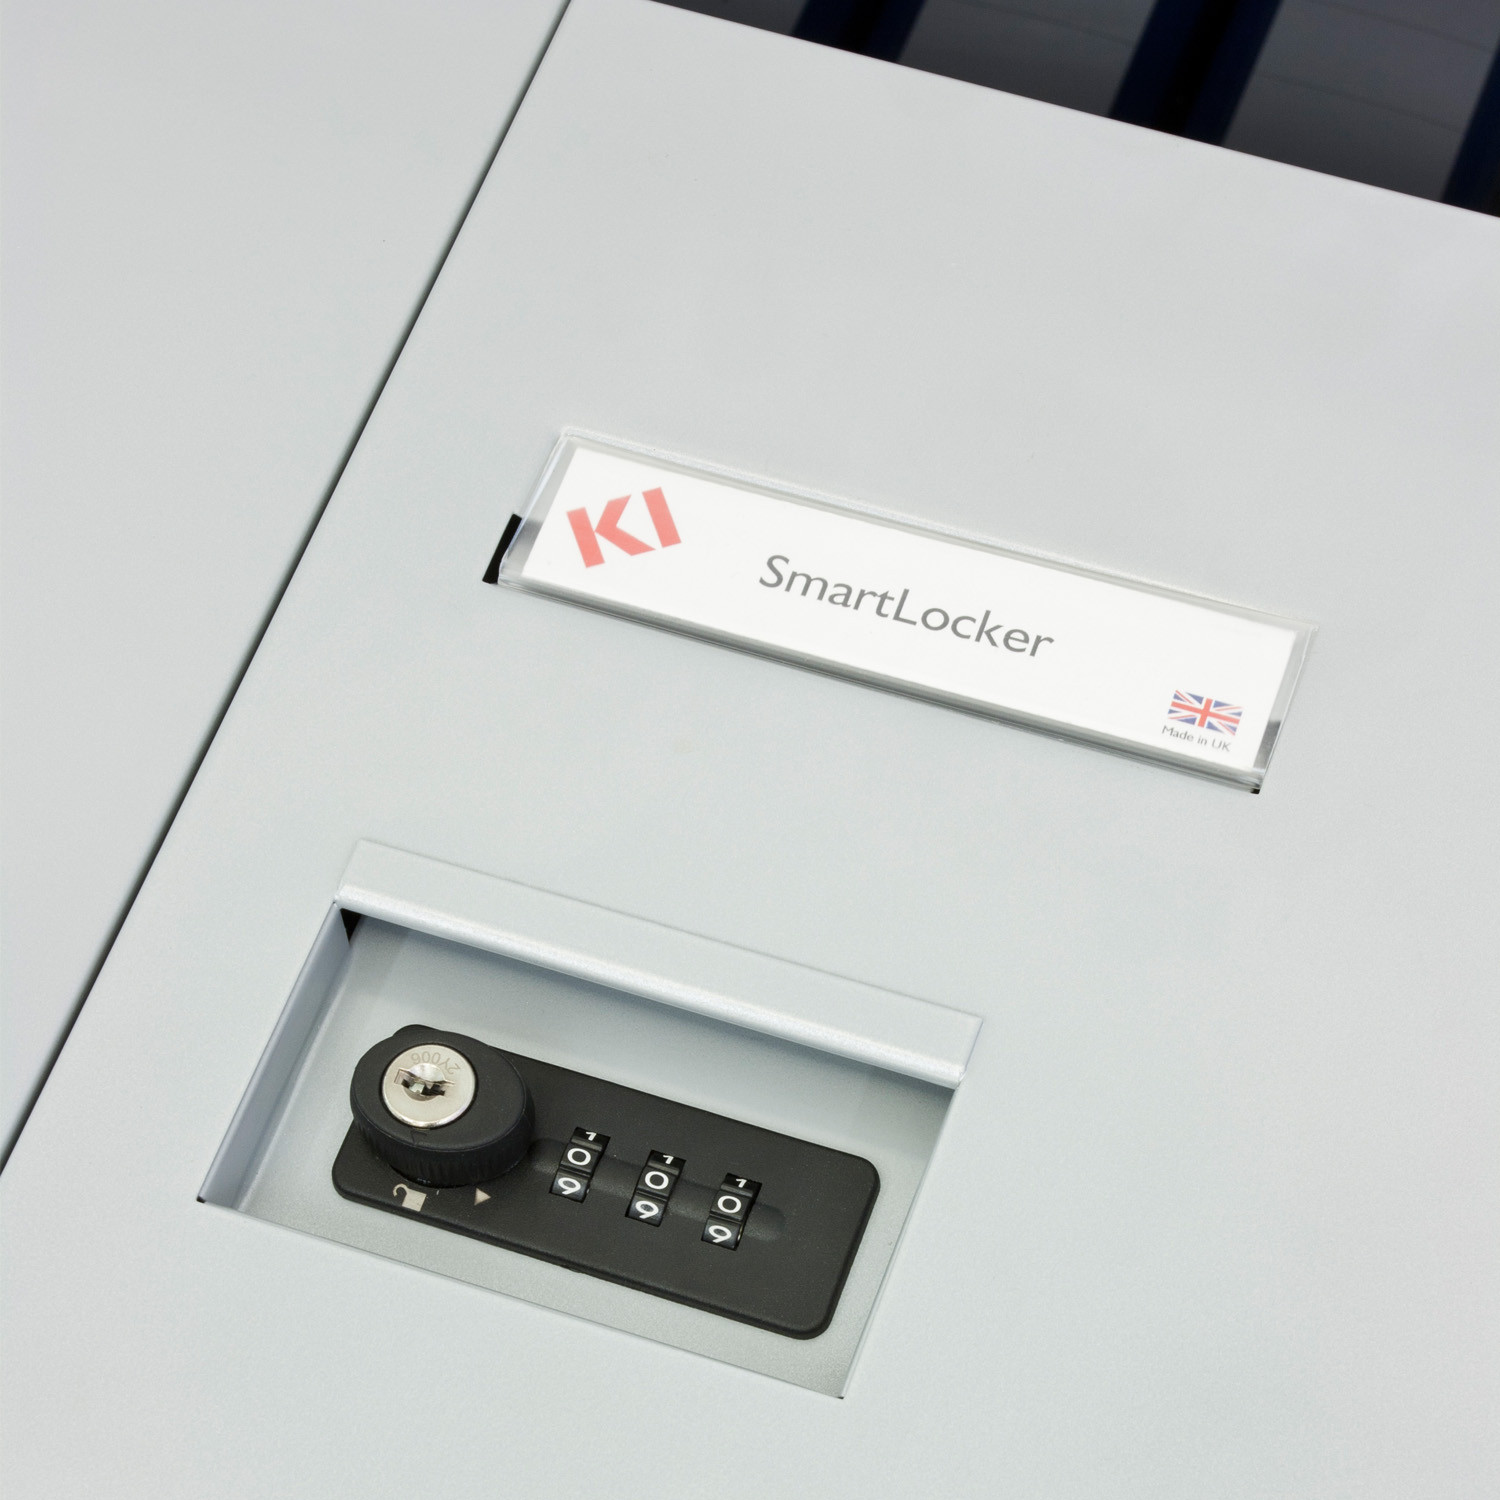 SmartLocker locking detail